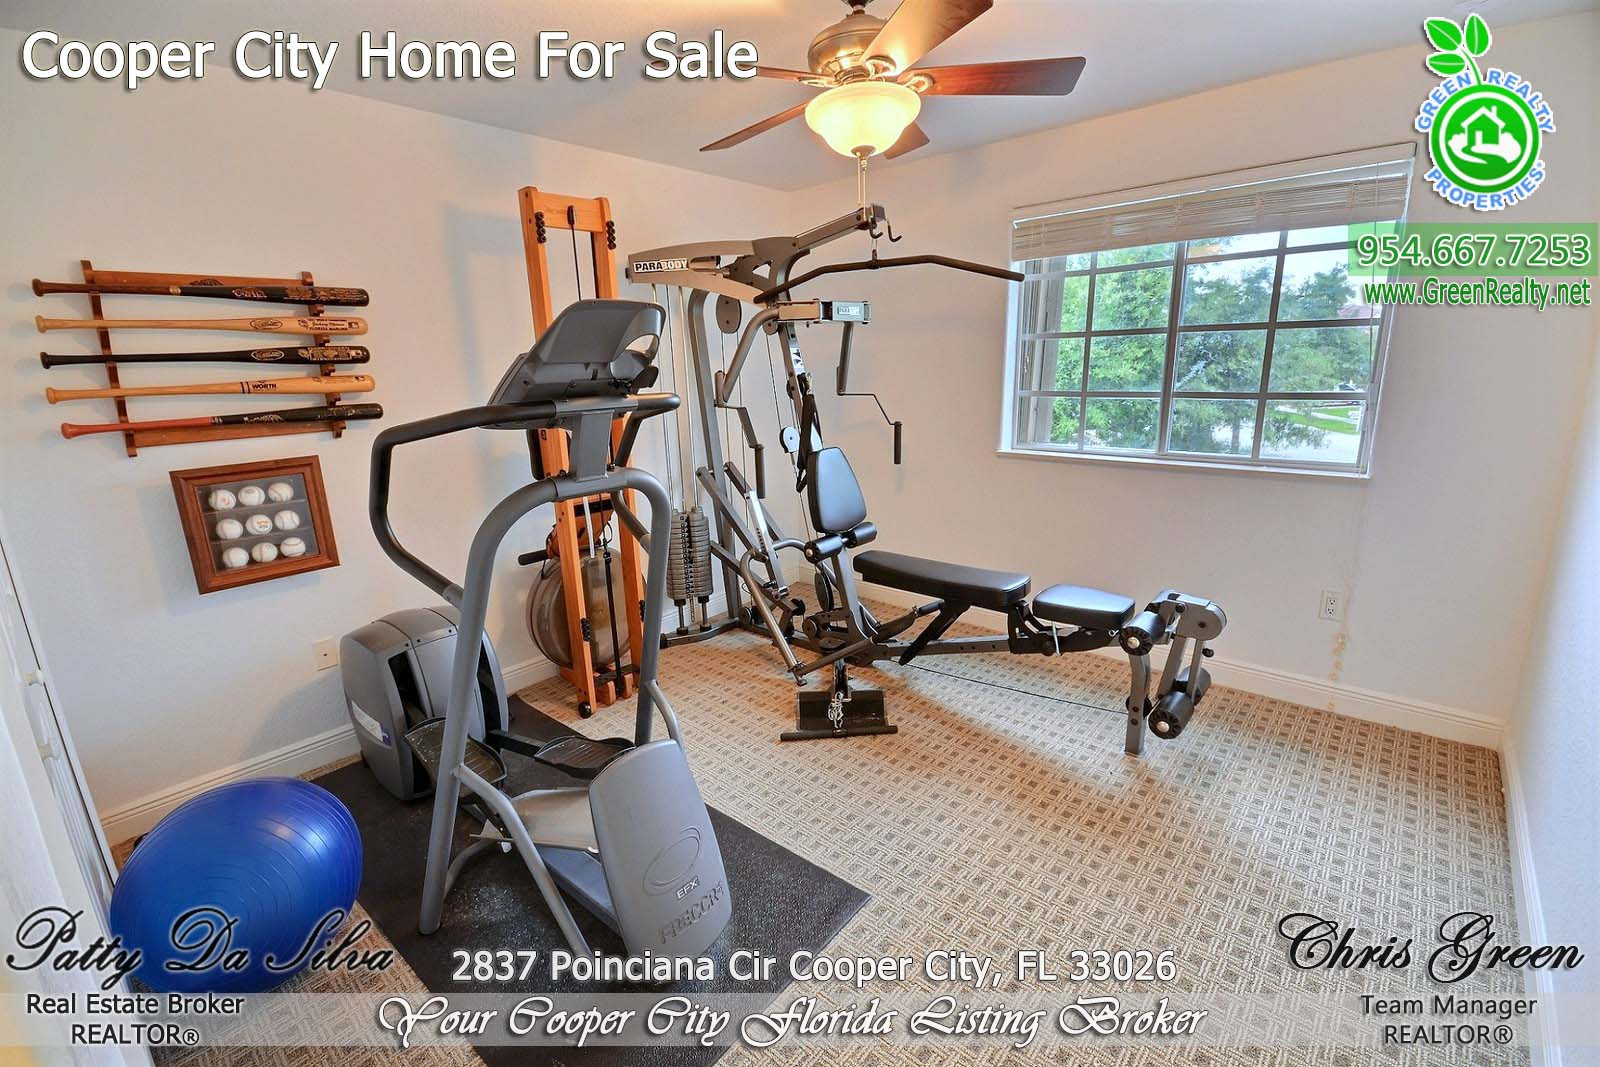 31 Homes For Sale in Rock Creek Florida (4)